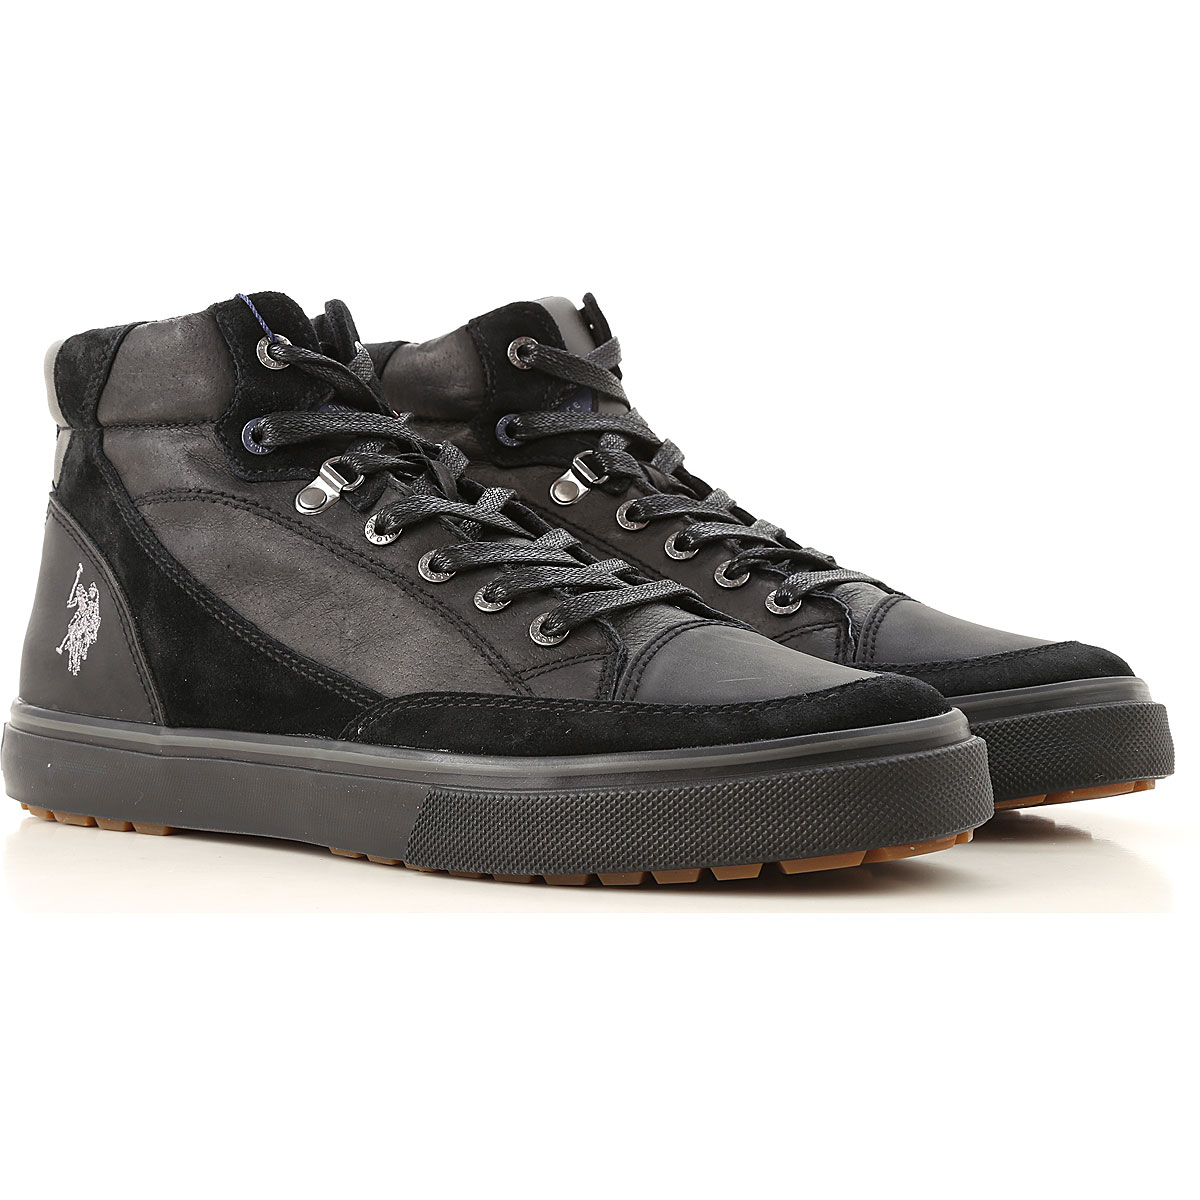 Image of U.S. Polo Sneakers for Men, Black, Leather, 2017, UK 6 - EUR 40 - US 7 UK 7 - EUR 41 - US 8 UK 8 - EUR 42 - US 9 UK 9 - EUR 43 - US 10